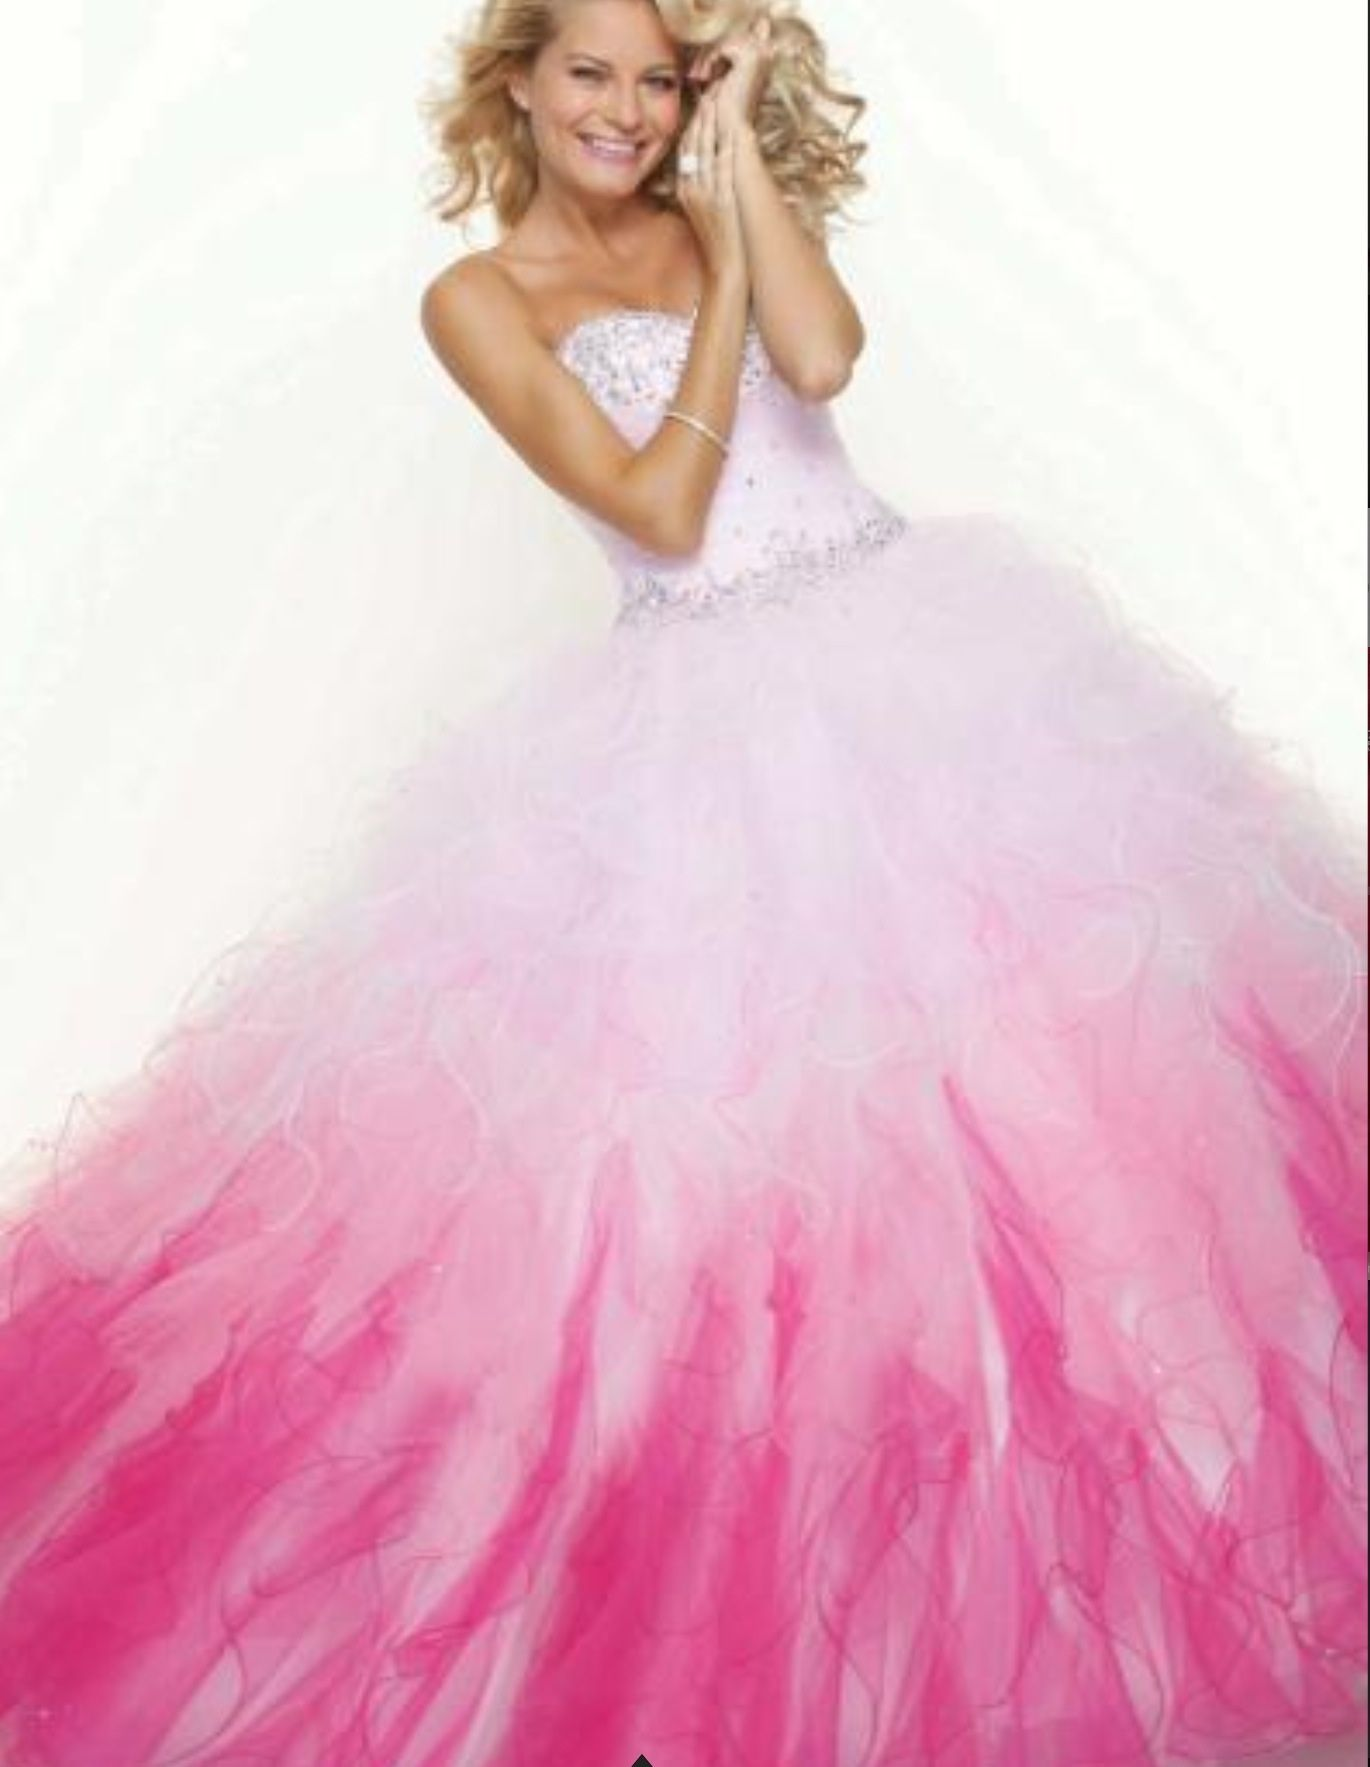 Feathered puffy gown | Prom dresses | Pinterest